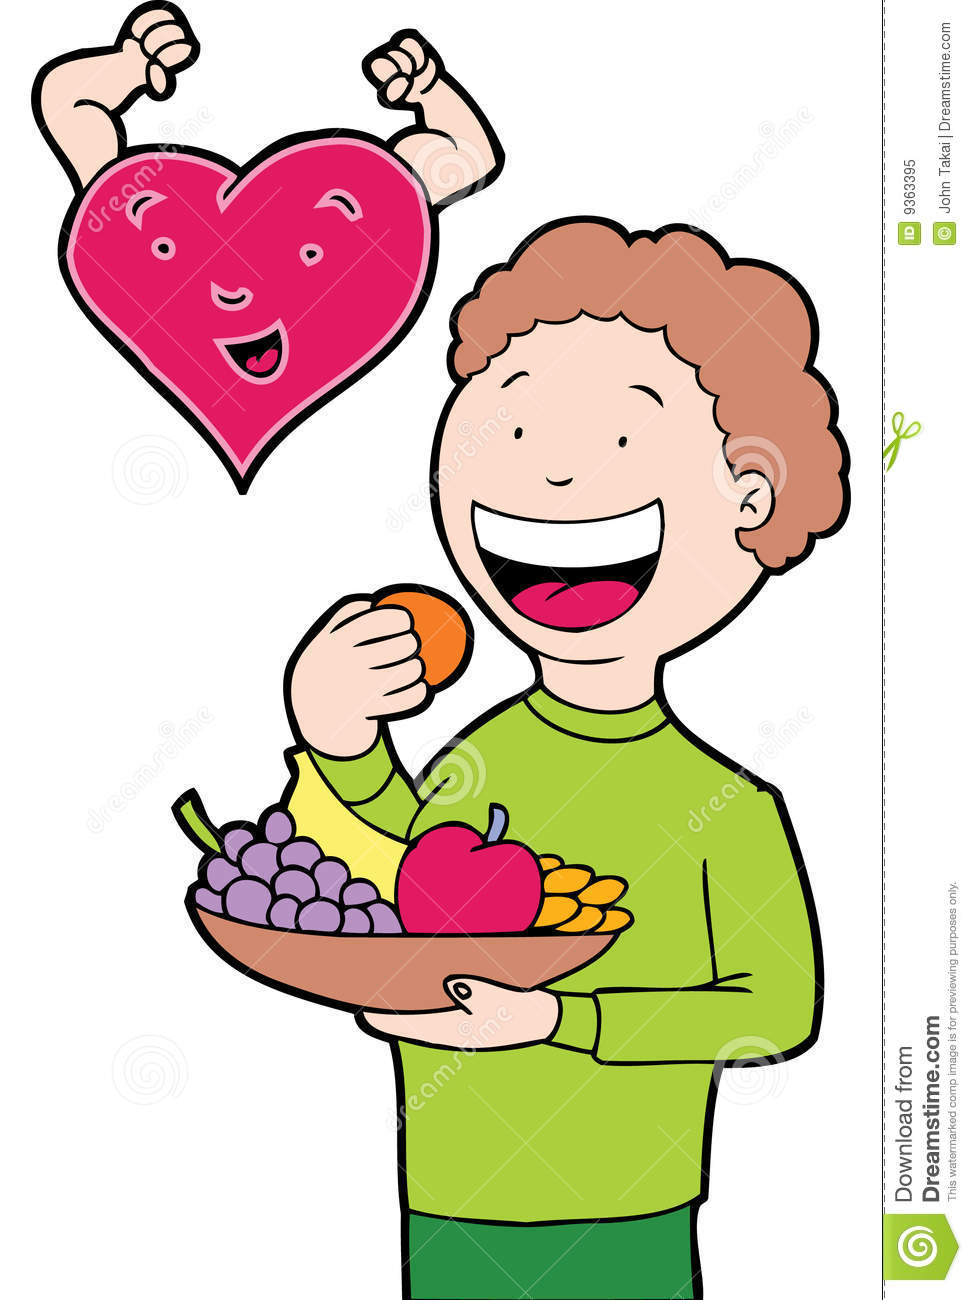 Well child clipart picture stock Free Healthy Foods For Kids Clipart, Download Free Clip Art ... picture stock